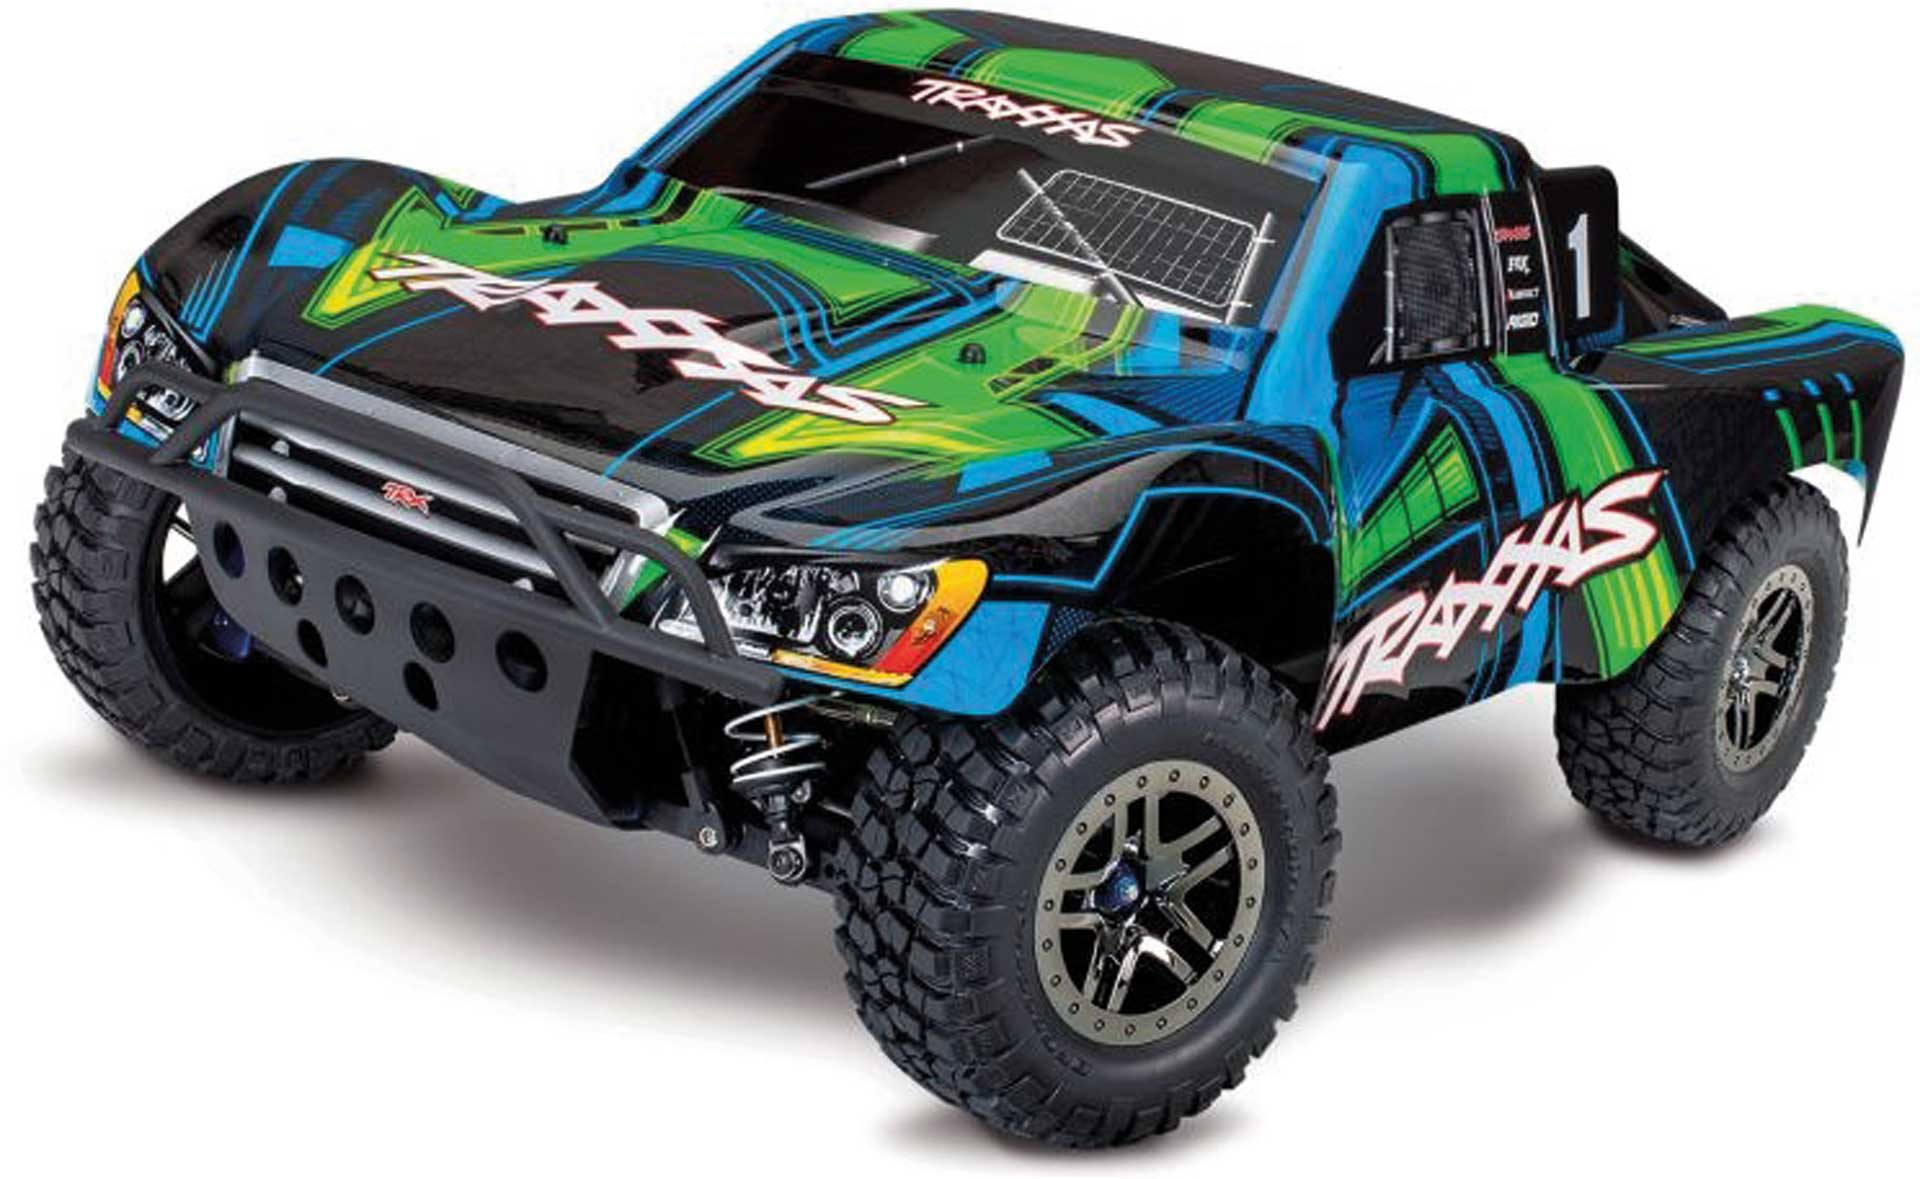 Traxxas SLASH 4X4 VXL ULTIMATE GRÜN RTR OHNE AKKU/LADE R 1/10 4WD SHORT-COURSE-RACE-TRUCK BRUSH